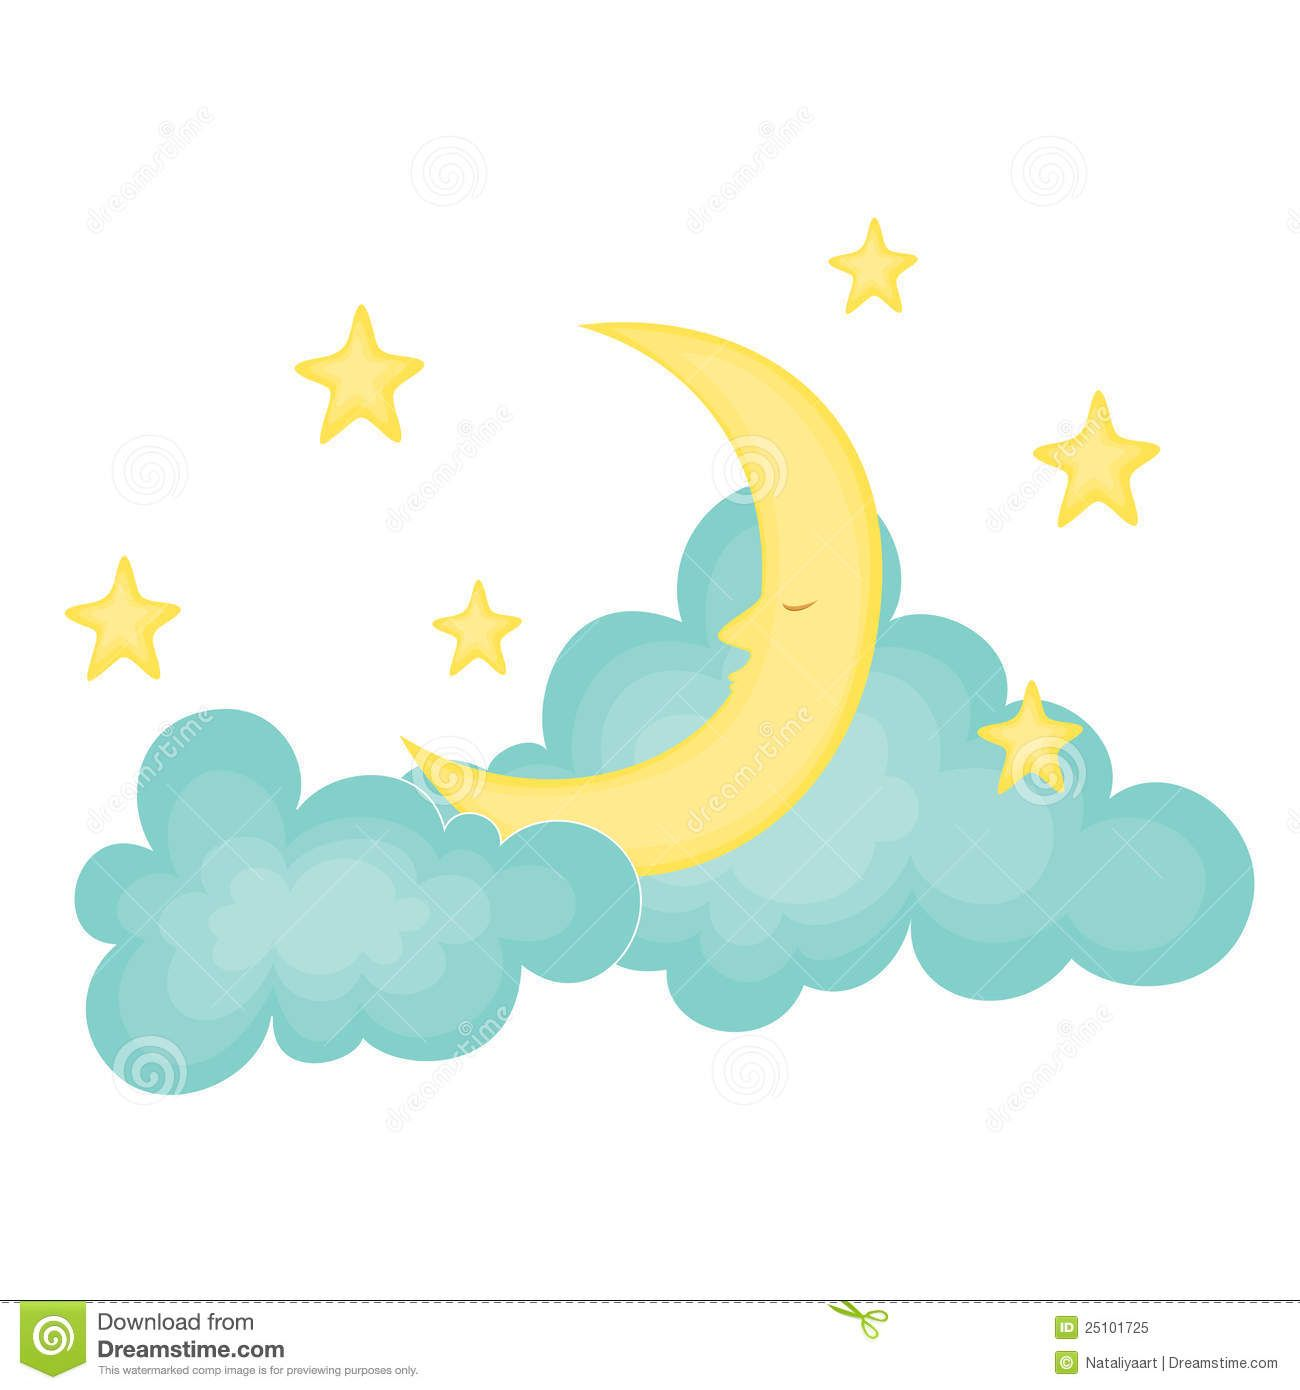 Moon and stars clipart can stock photo clip art freeuse library Moon And Stars Clipart - Clipart Kid | THE MOON AND STARS | Star ... clip art freeuse library